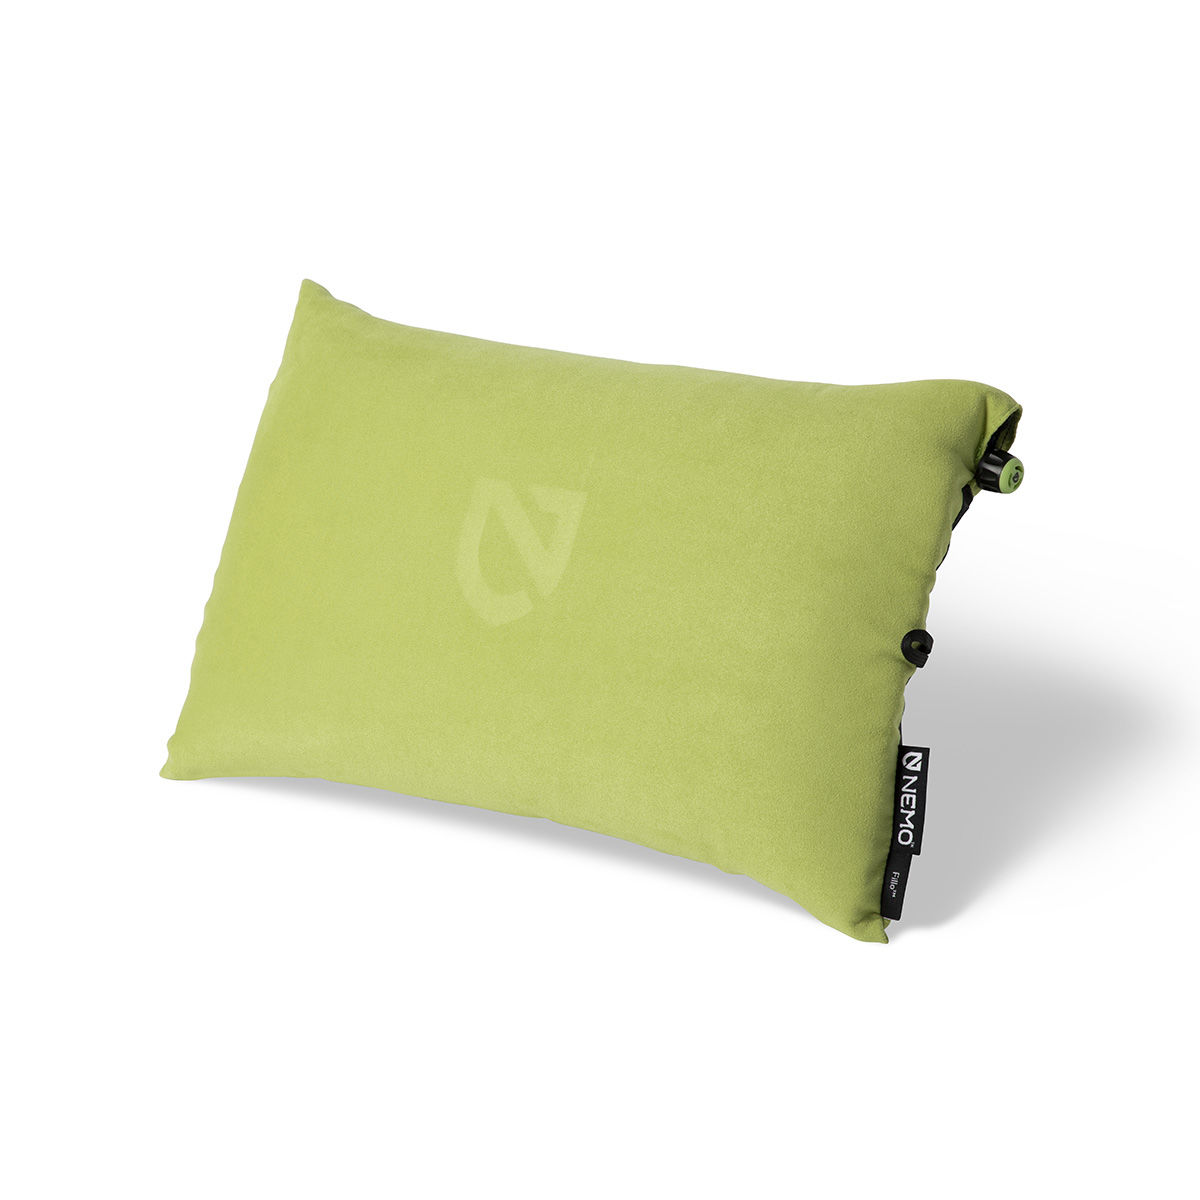 Coussin gonflable Nemo Fillo vert